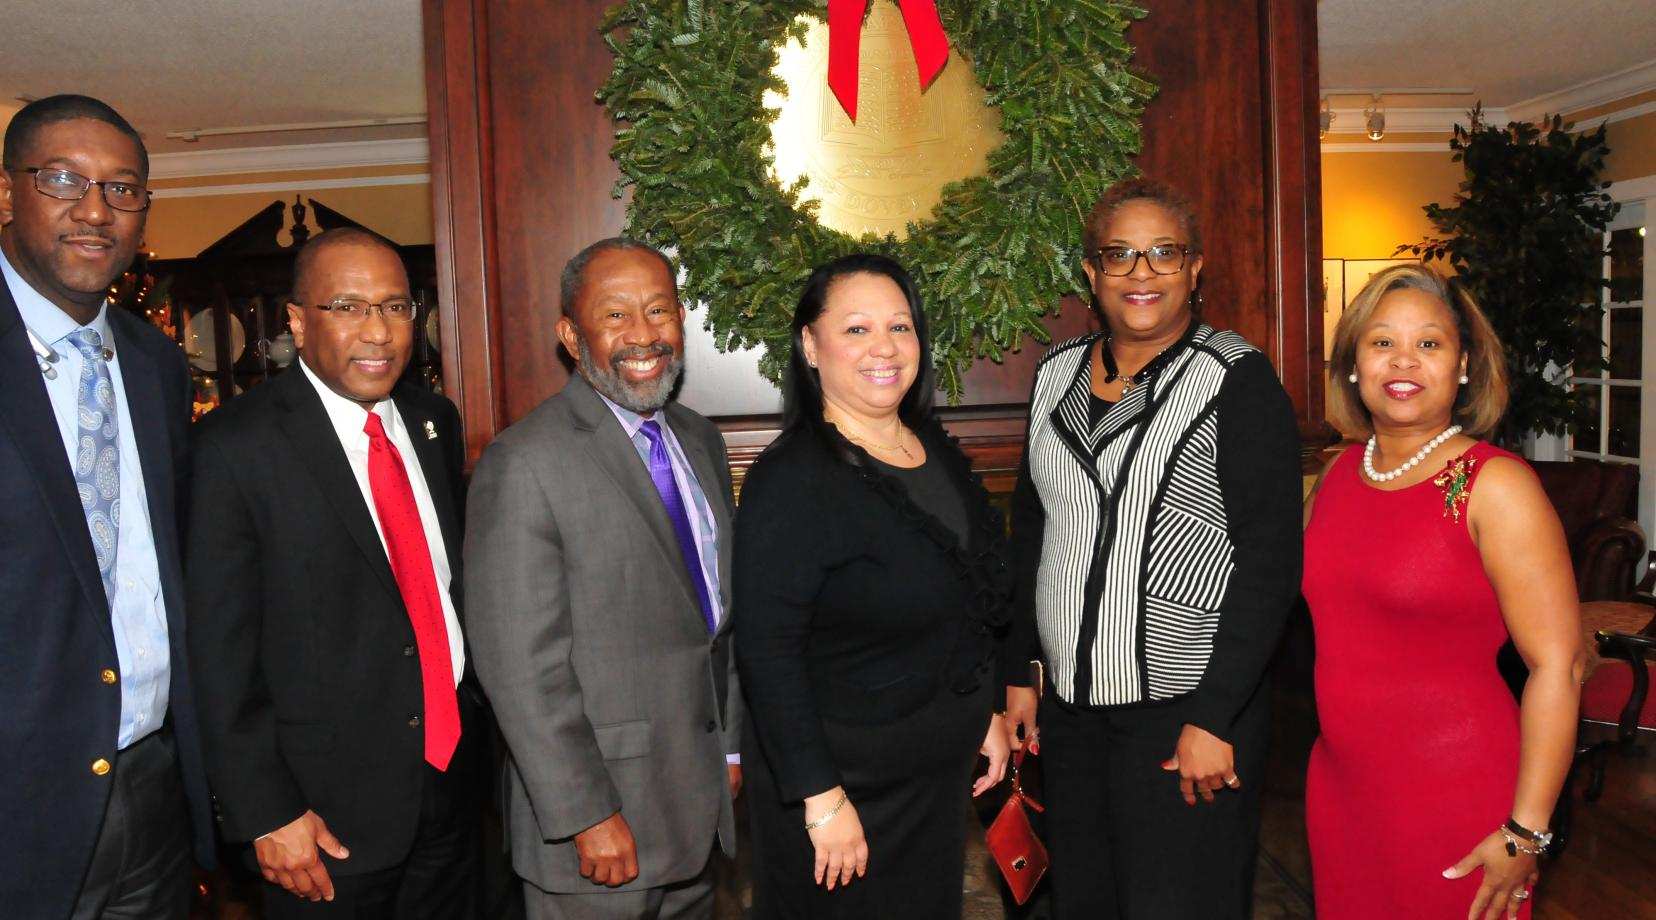 These DSU employees were one of many who took advantage of one more opportunity to get their picture taken with the DSU president and the First Lady during the annual Christmas Open House.